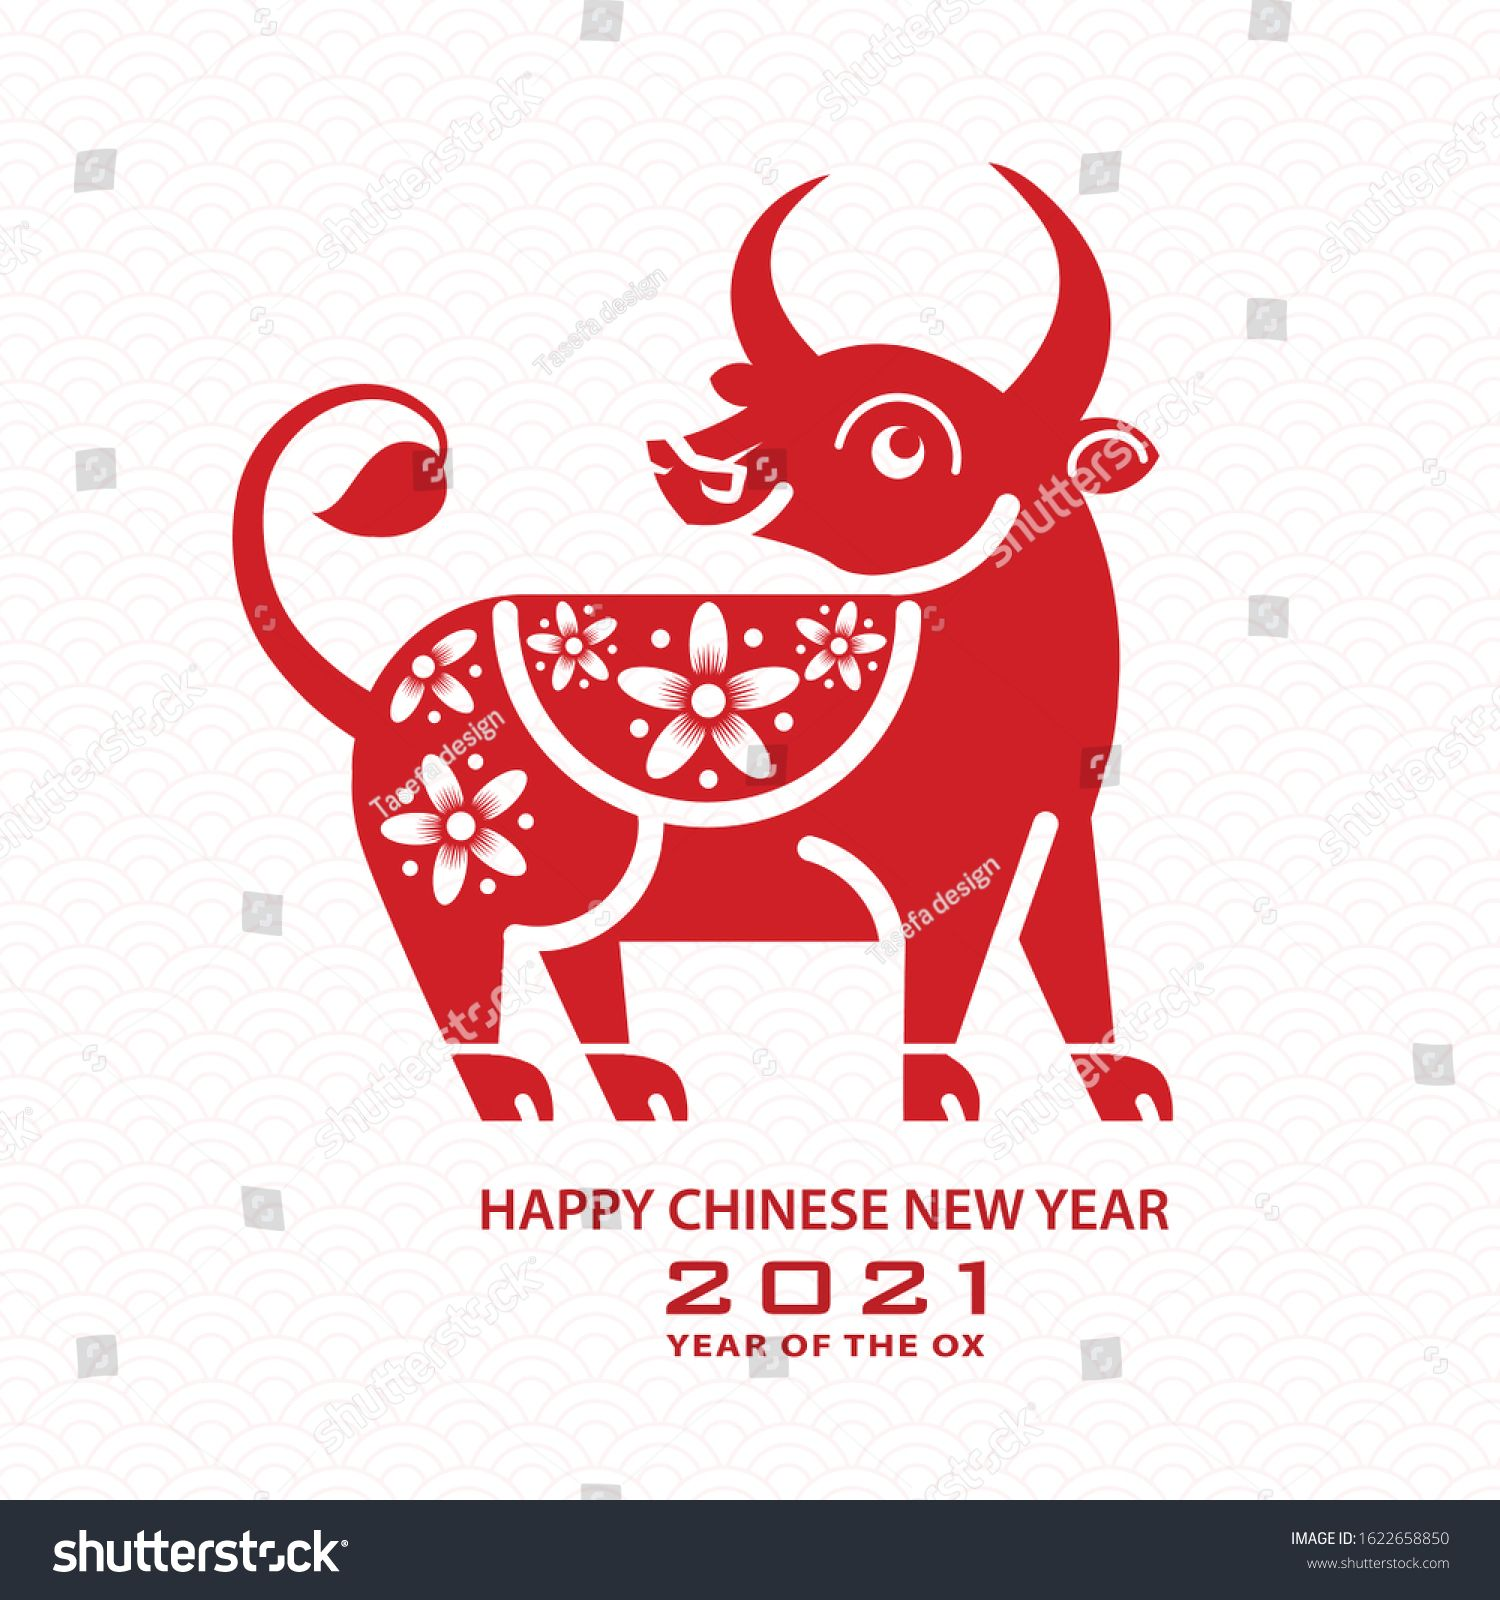 Image vectorielle de stock de Happy Chinese New Year 2021 ...